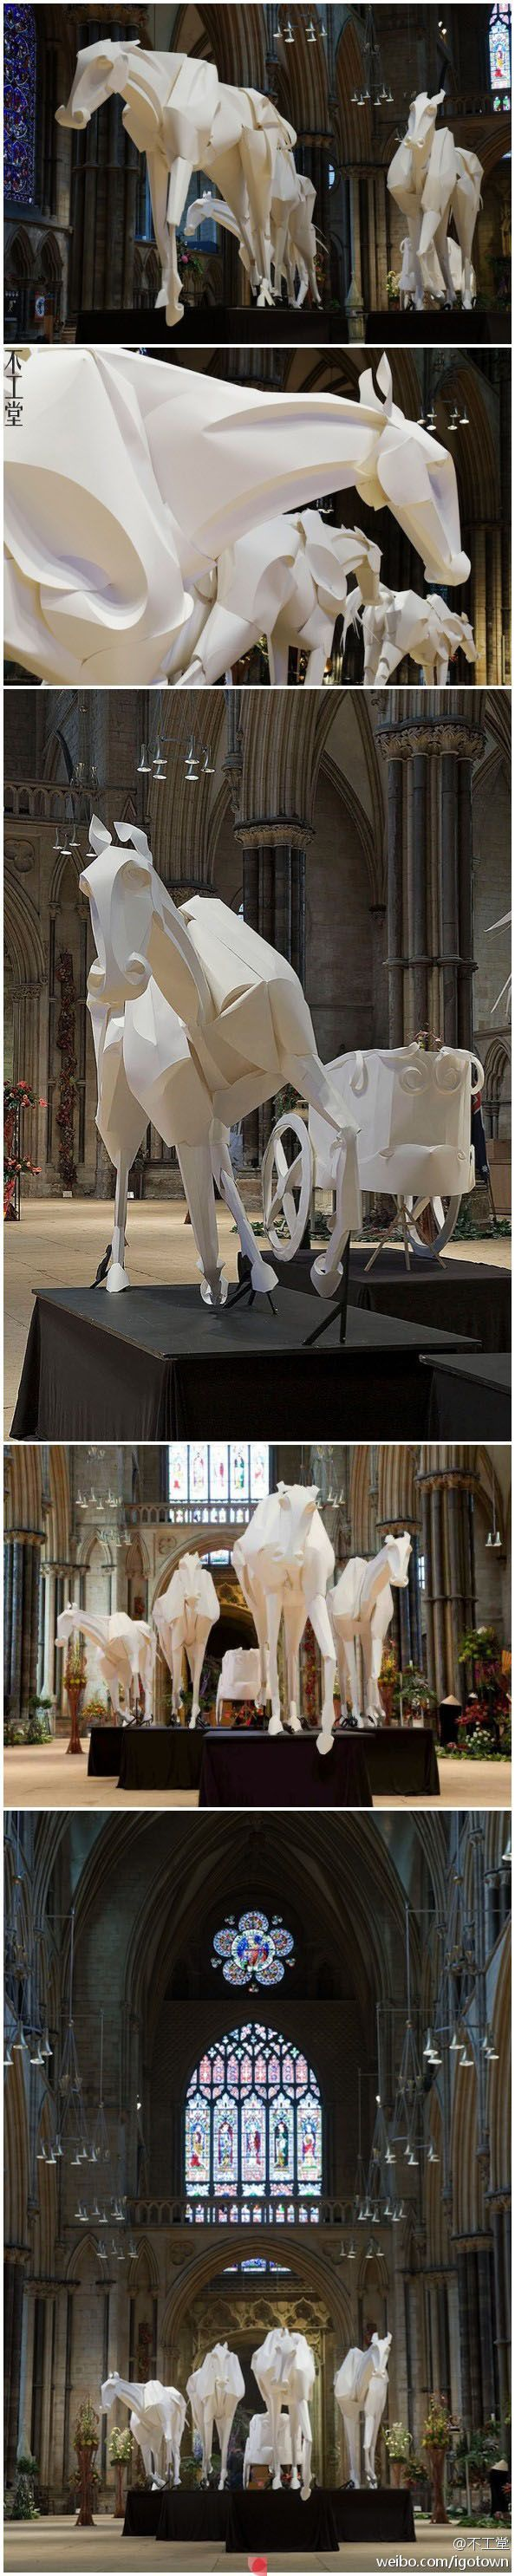 Majestic Paper Horses :: Installation by Richard Sweeney - horse and chariot sculpture installation made of paper inside the Lincoln Cathedral in Lincoln, England. (scheduled via http://www.tailwindapp.com?utm_source=pinterest&utm_medium=twpin&utm_content=post2290837&utm_campaign=scheduler_attribution)